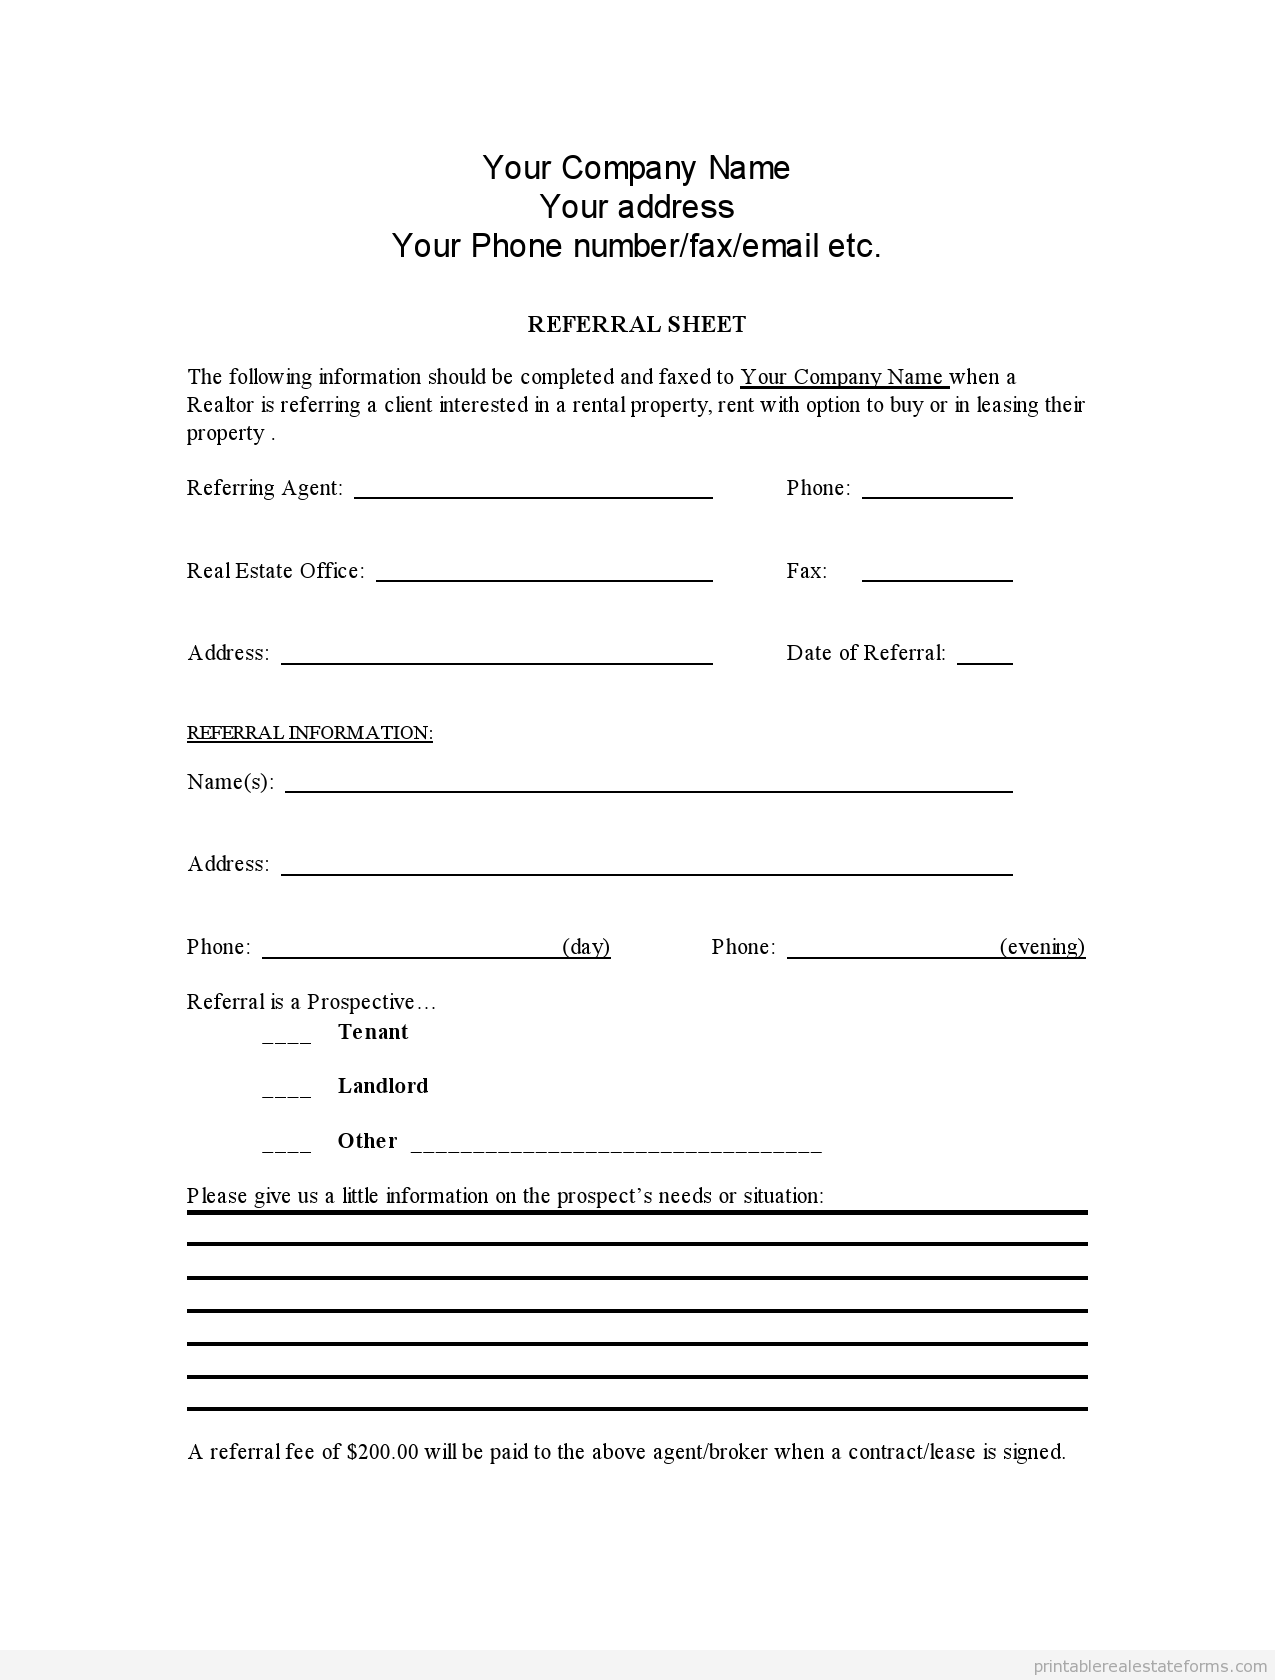 Sample printable referral sheet for realtors form latest for Referral document template